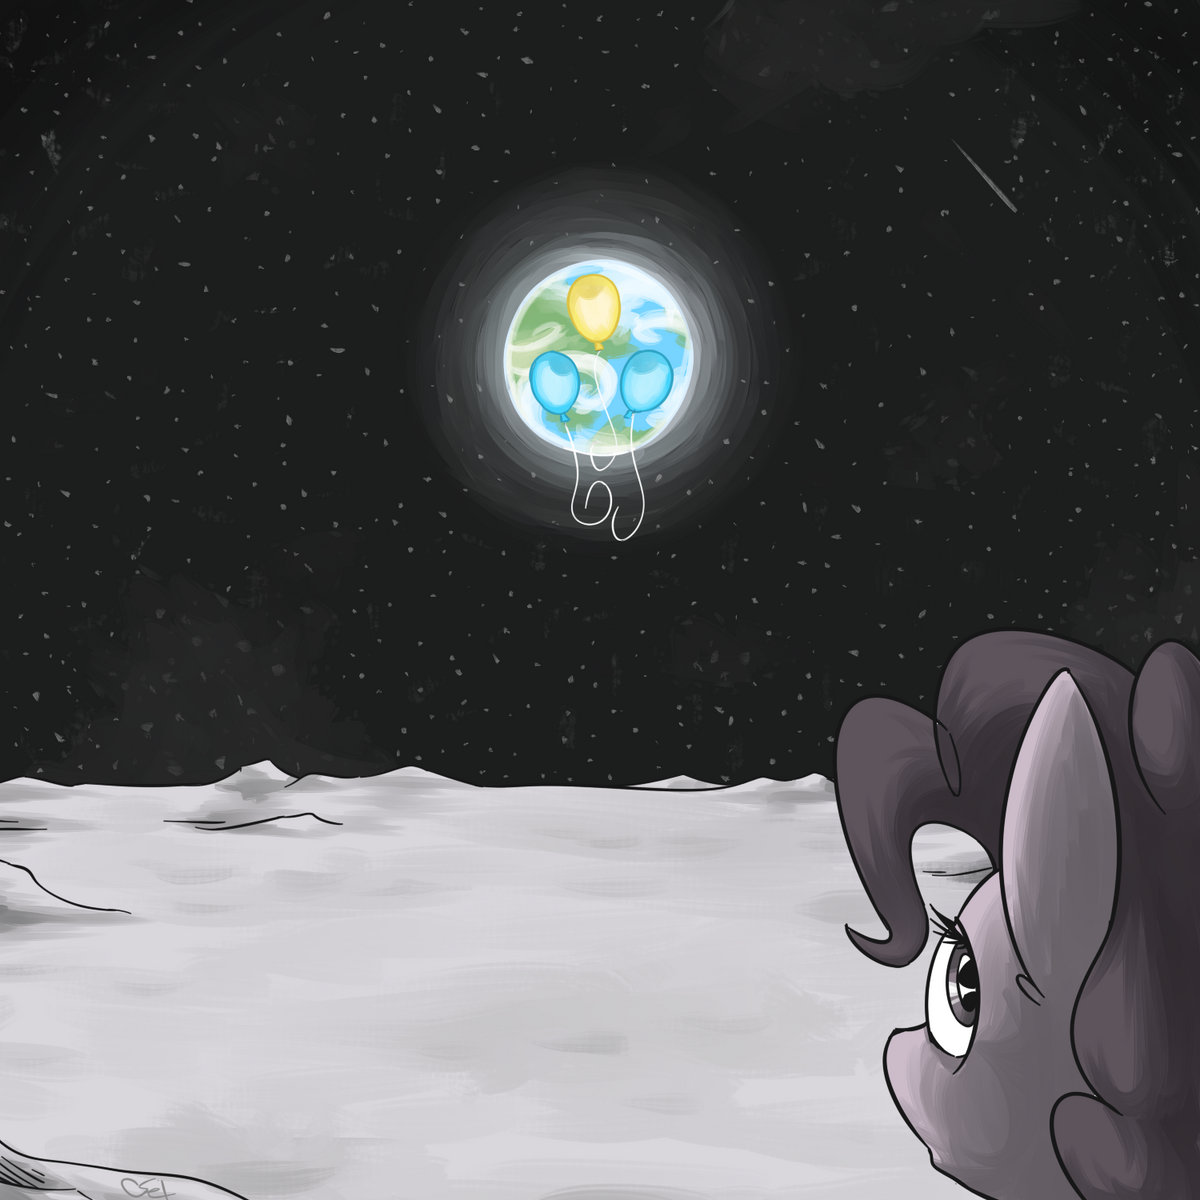 still on the moon ft giggly maria 4everfreebrony